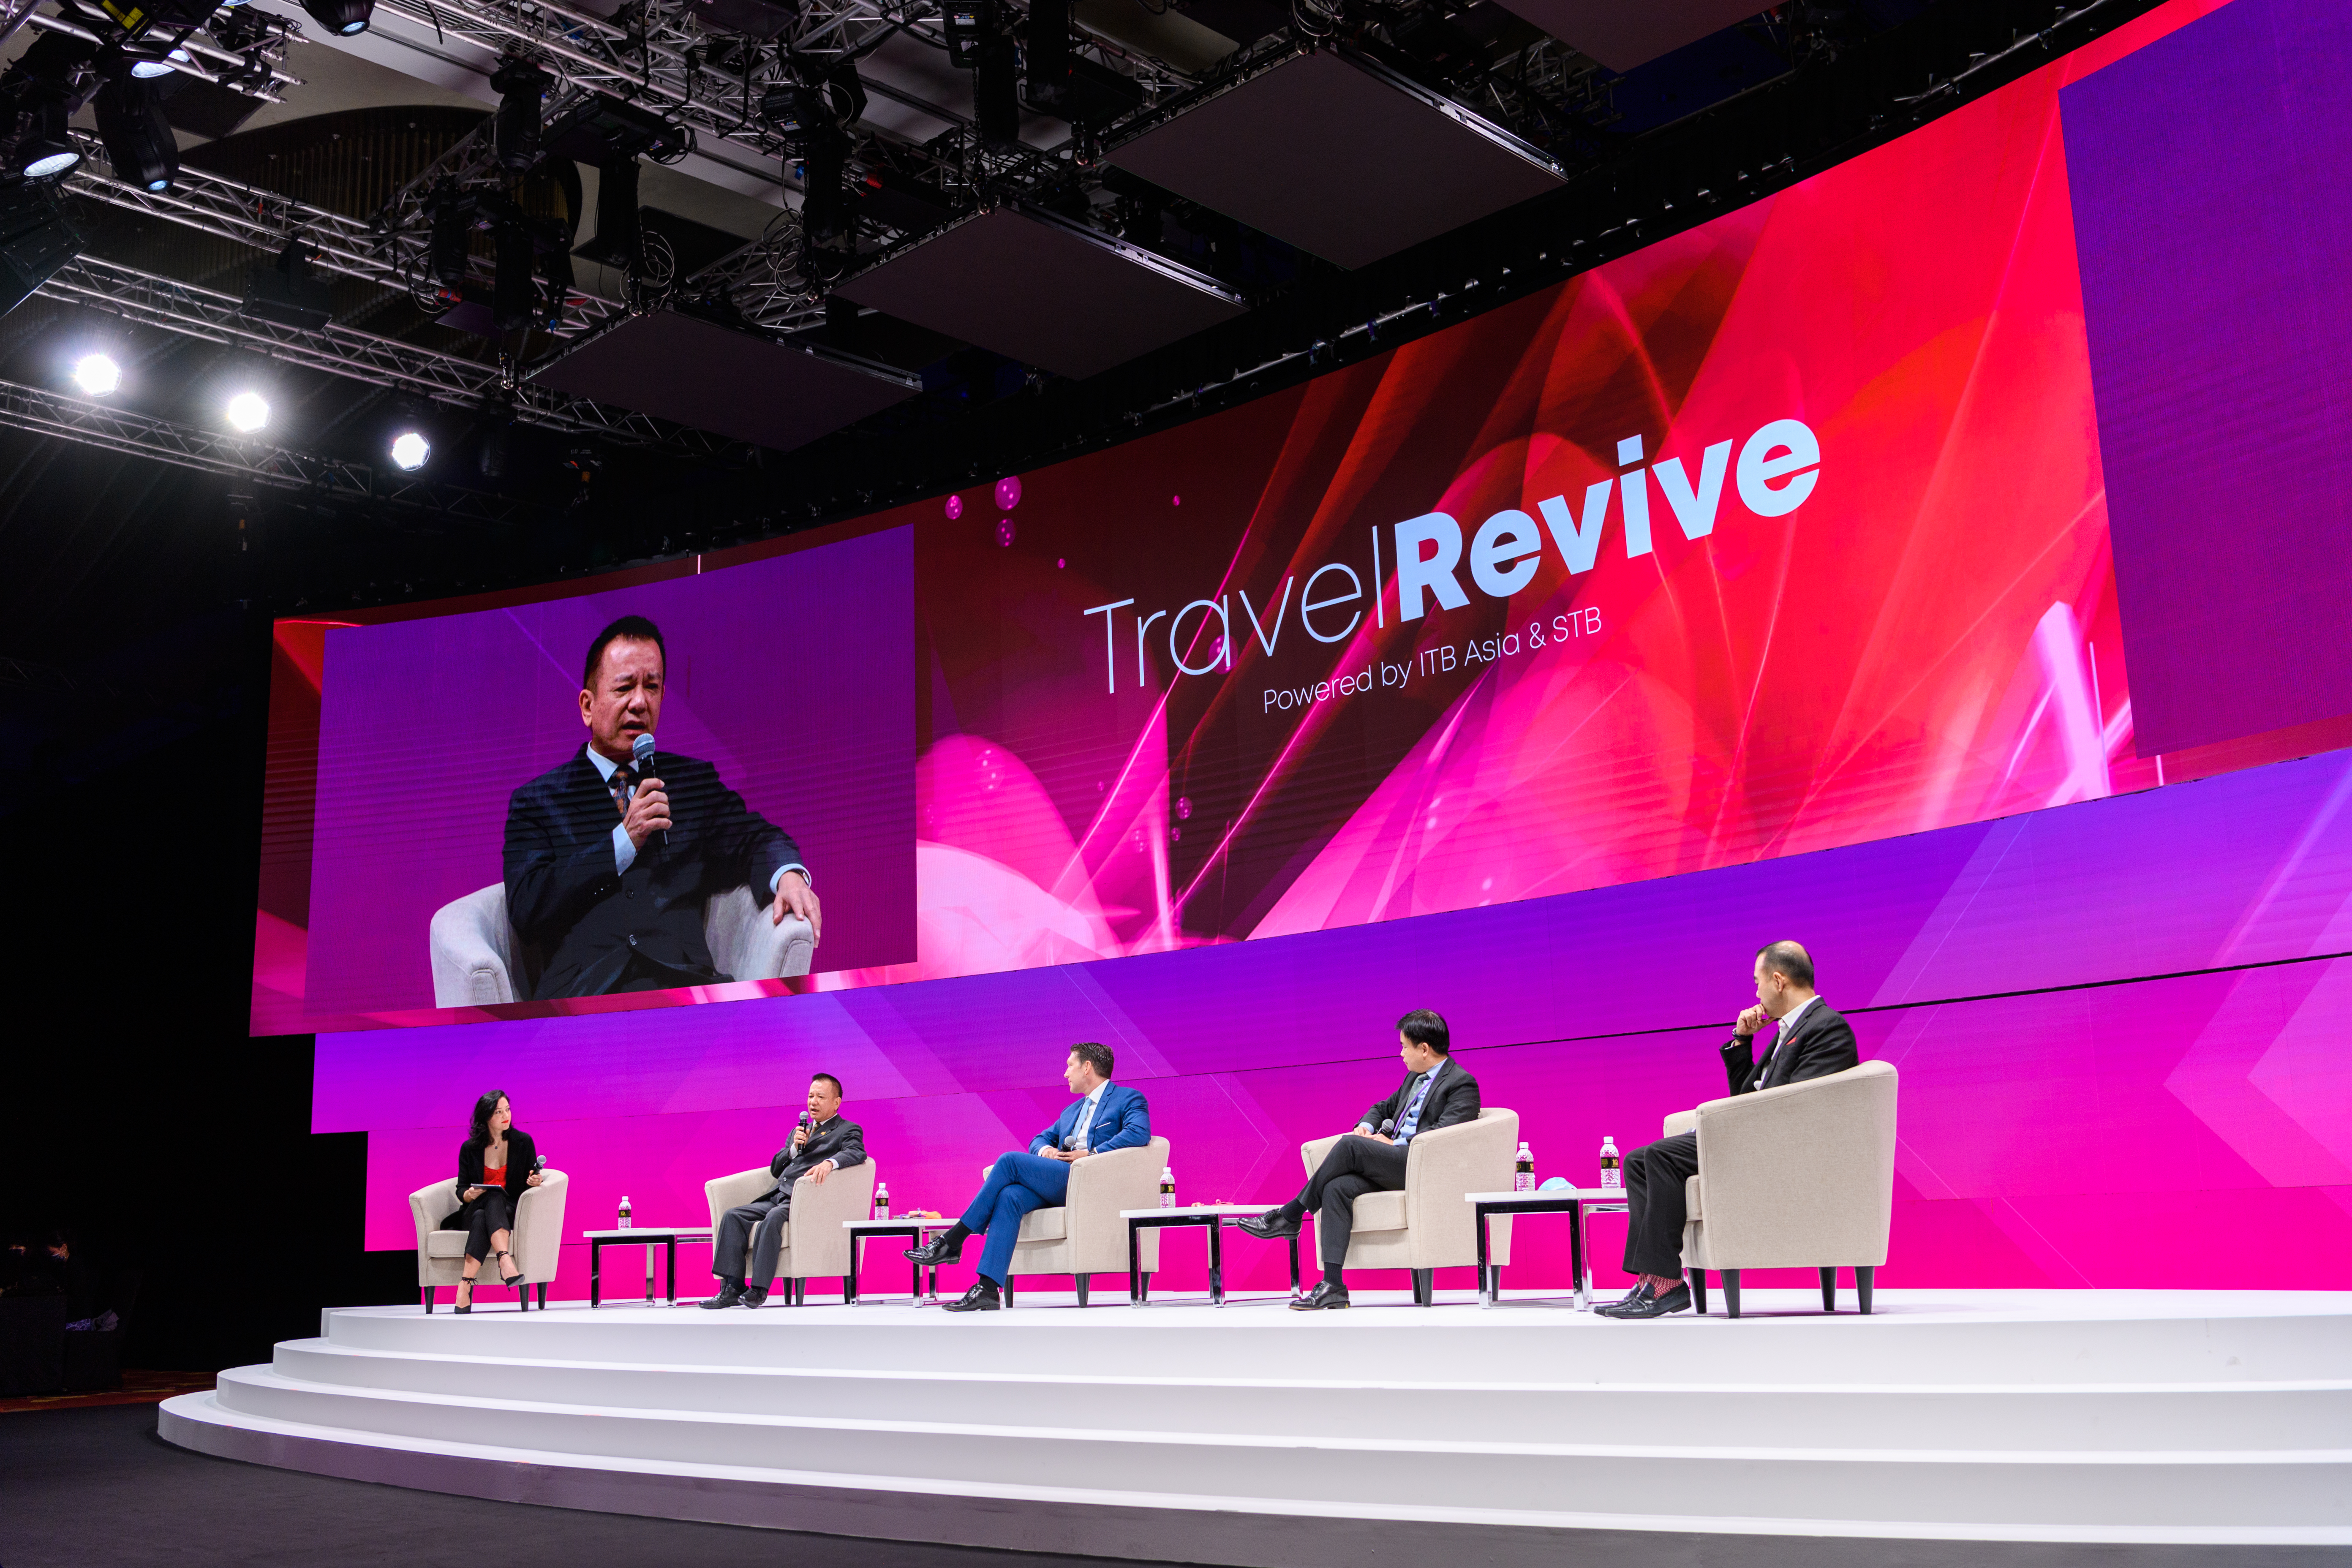 ITB Asia, Travel Revive, International Conference Services, ICS, Mathias Posch, Brains for Gains, Singapore Conference Management, Hybrid Events